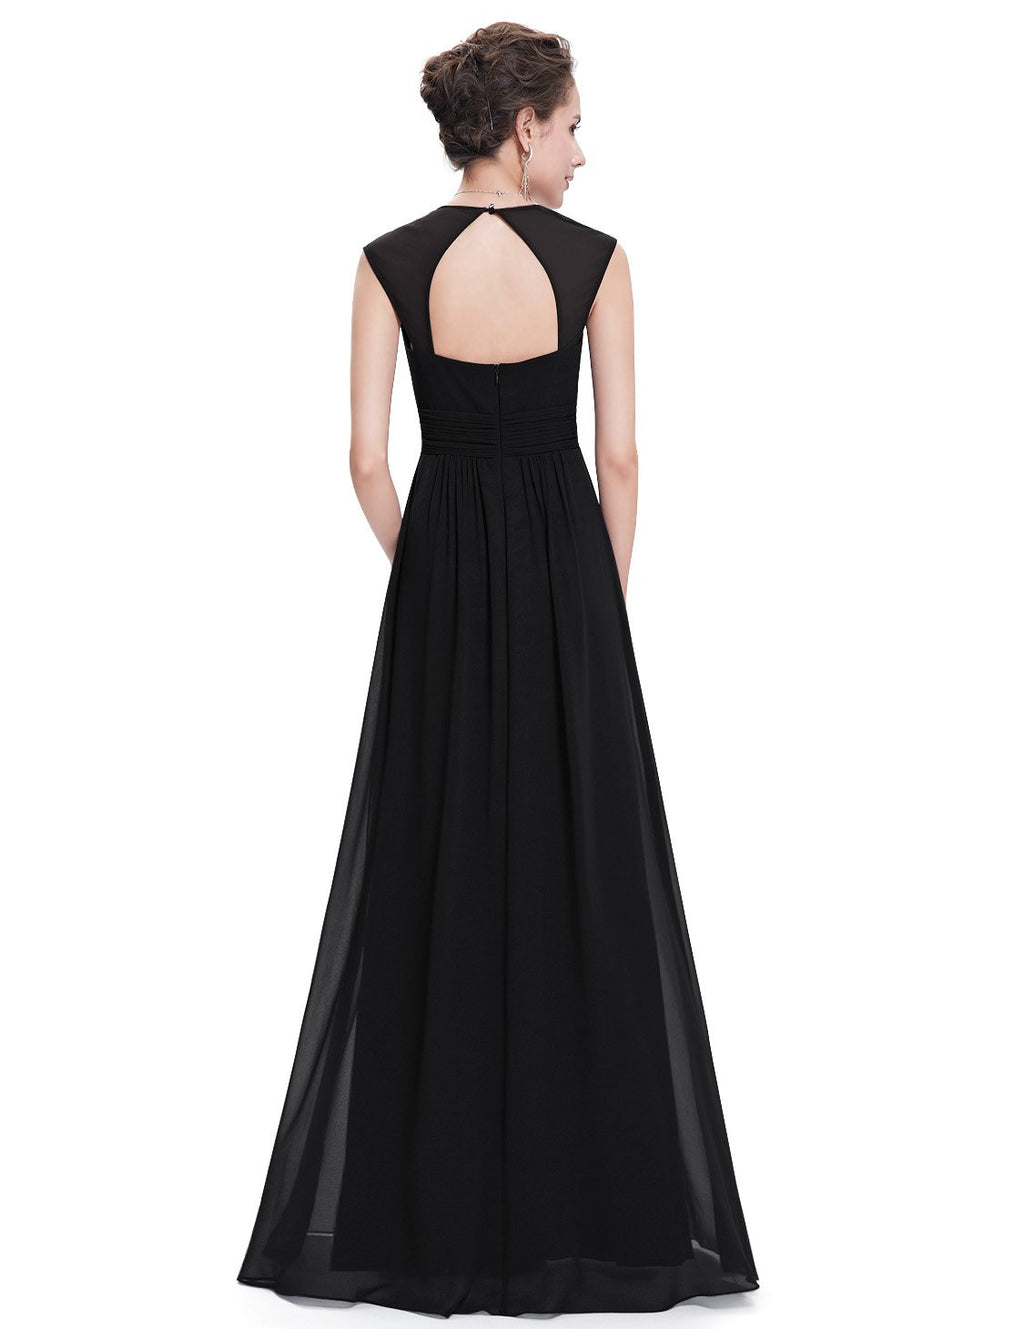 Sexy Neckline Dress Black